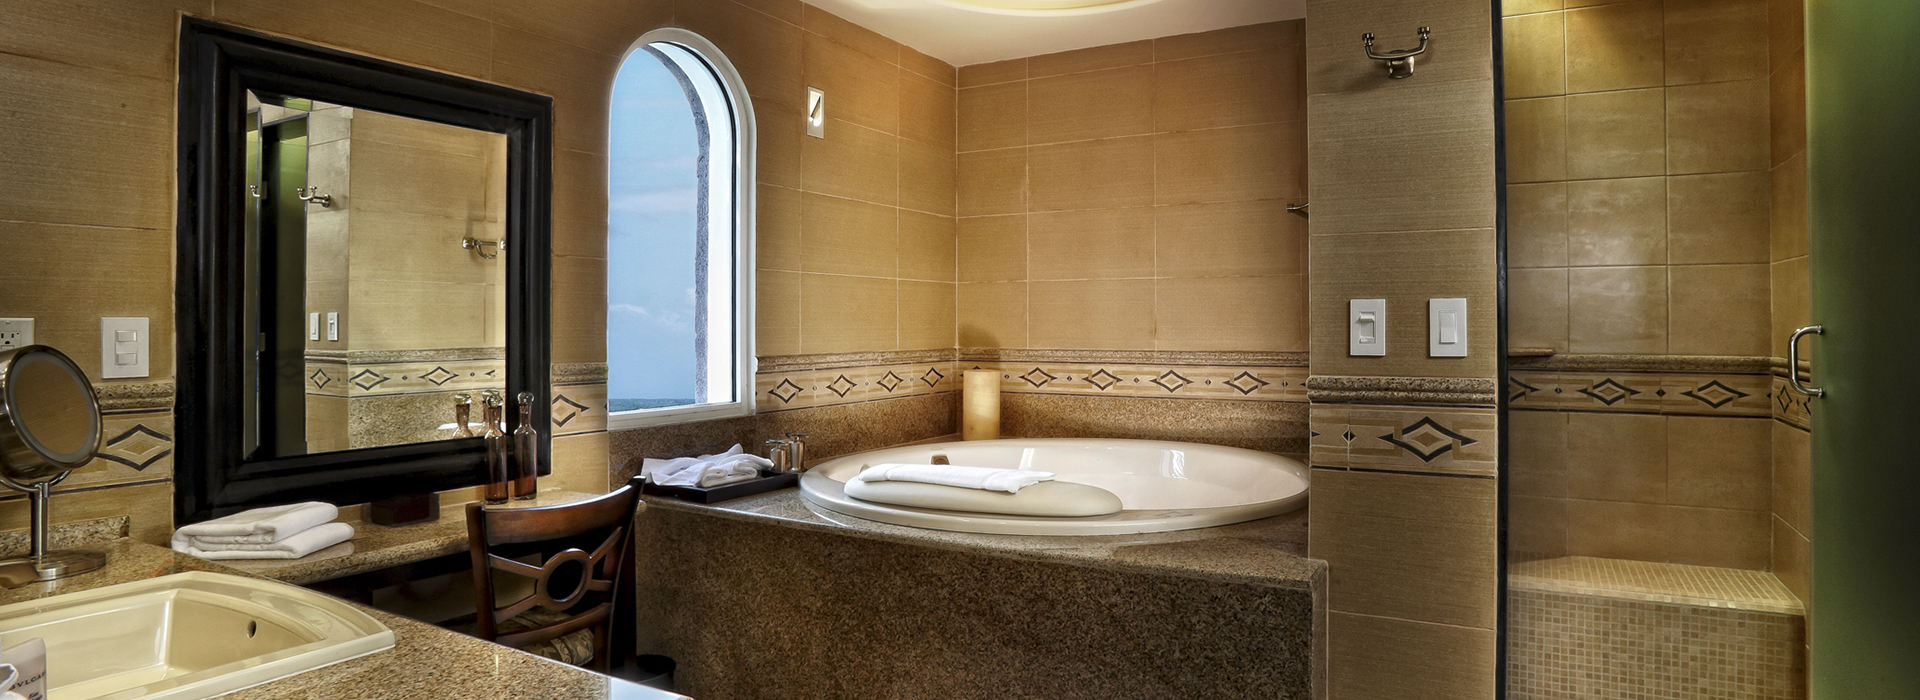 Luxury bathroom with Jacuzzi in Riviera Maya